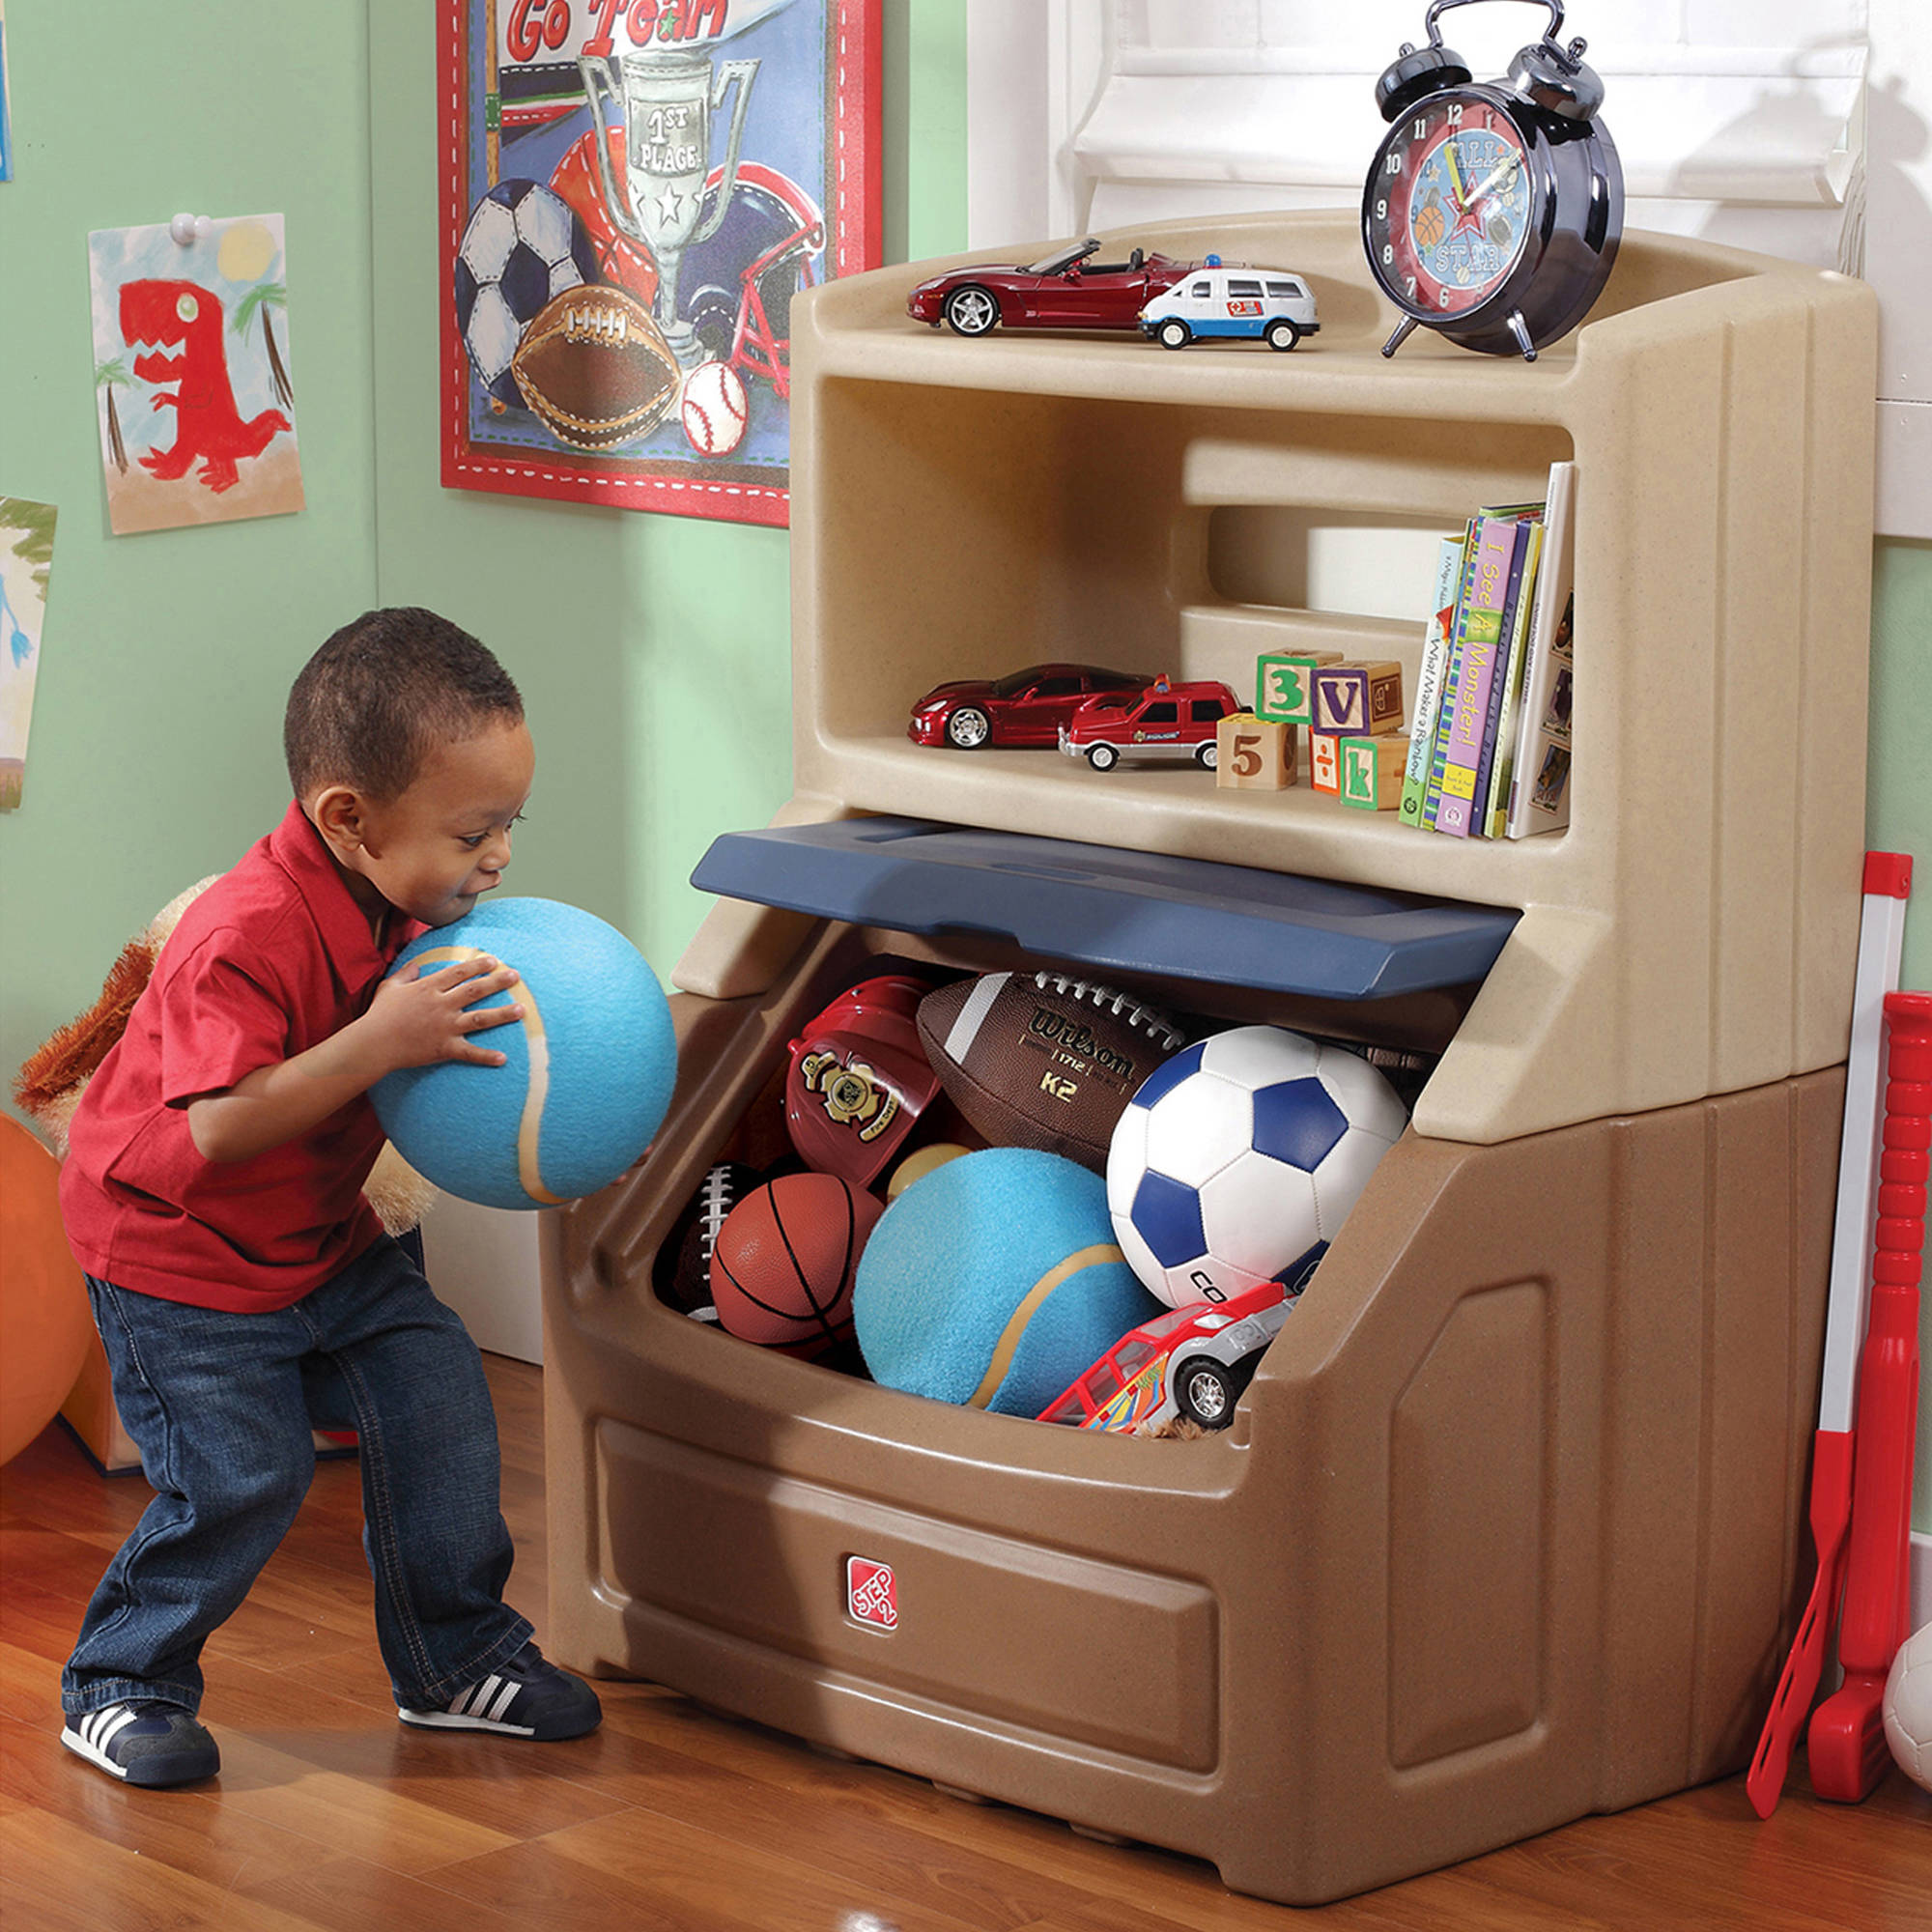 step2 lift & hide bookcase with kids storage bin and toy